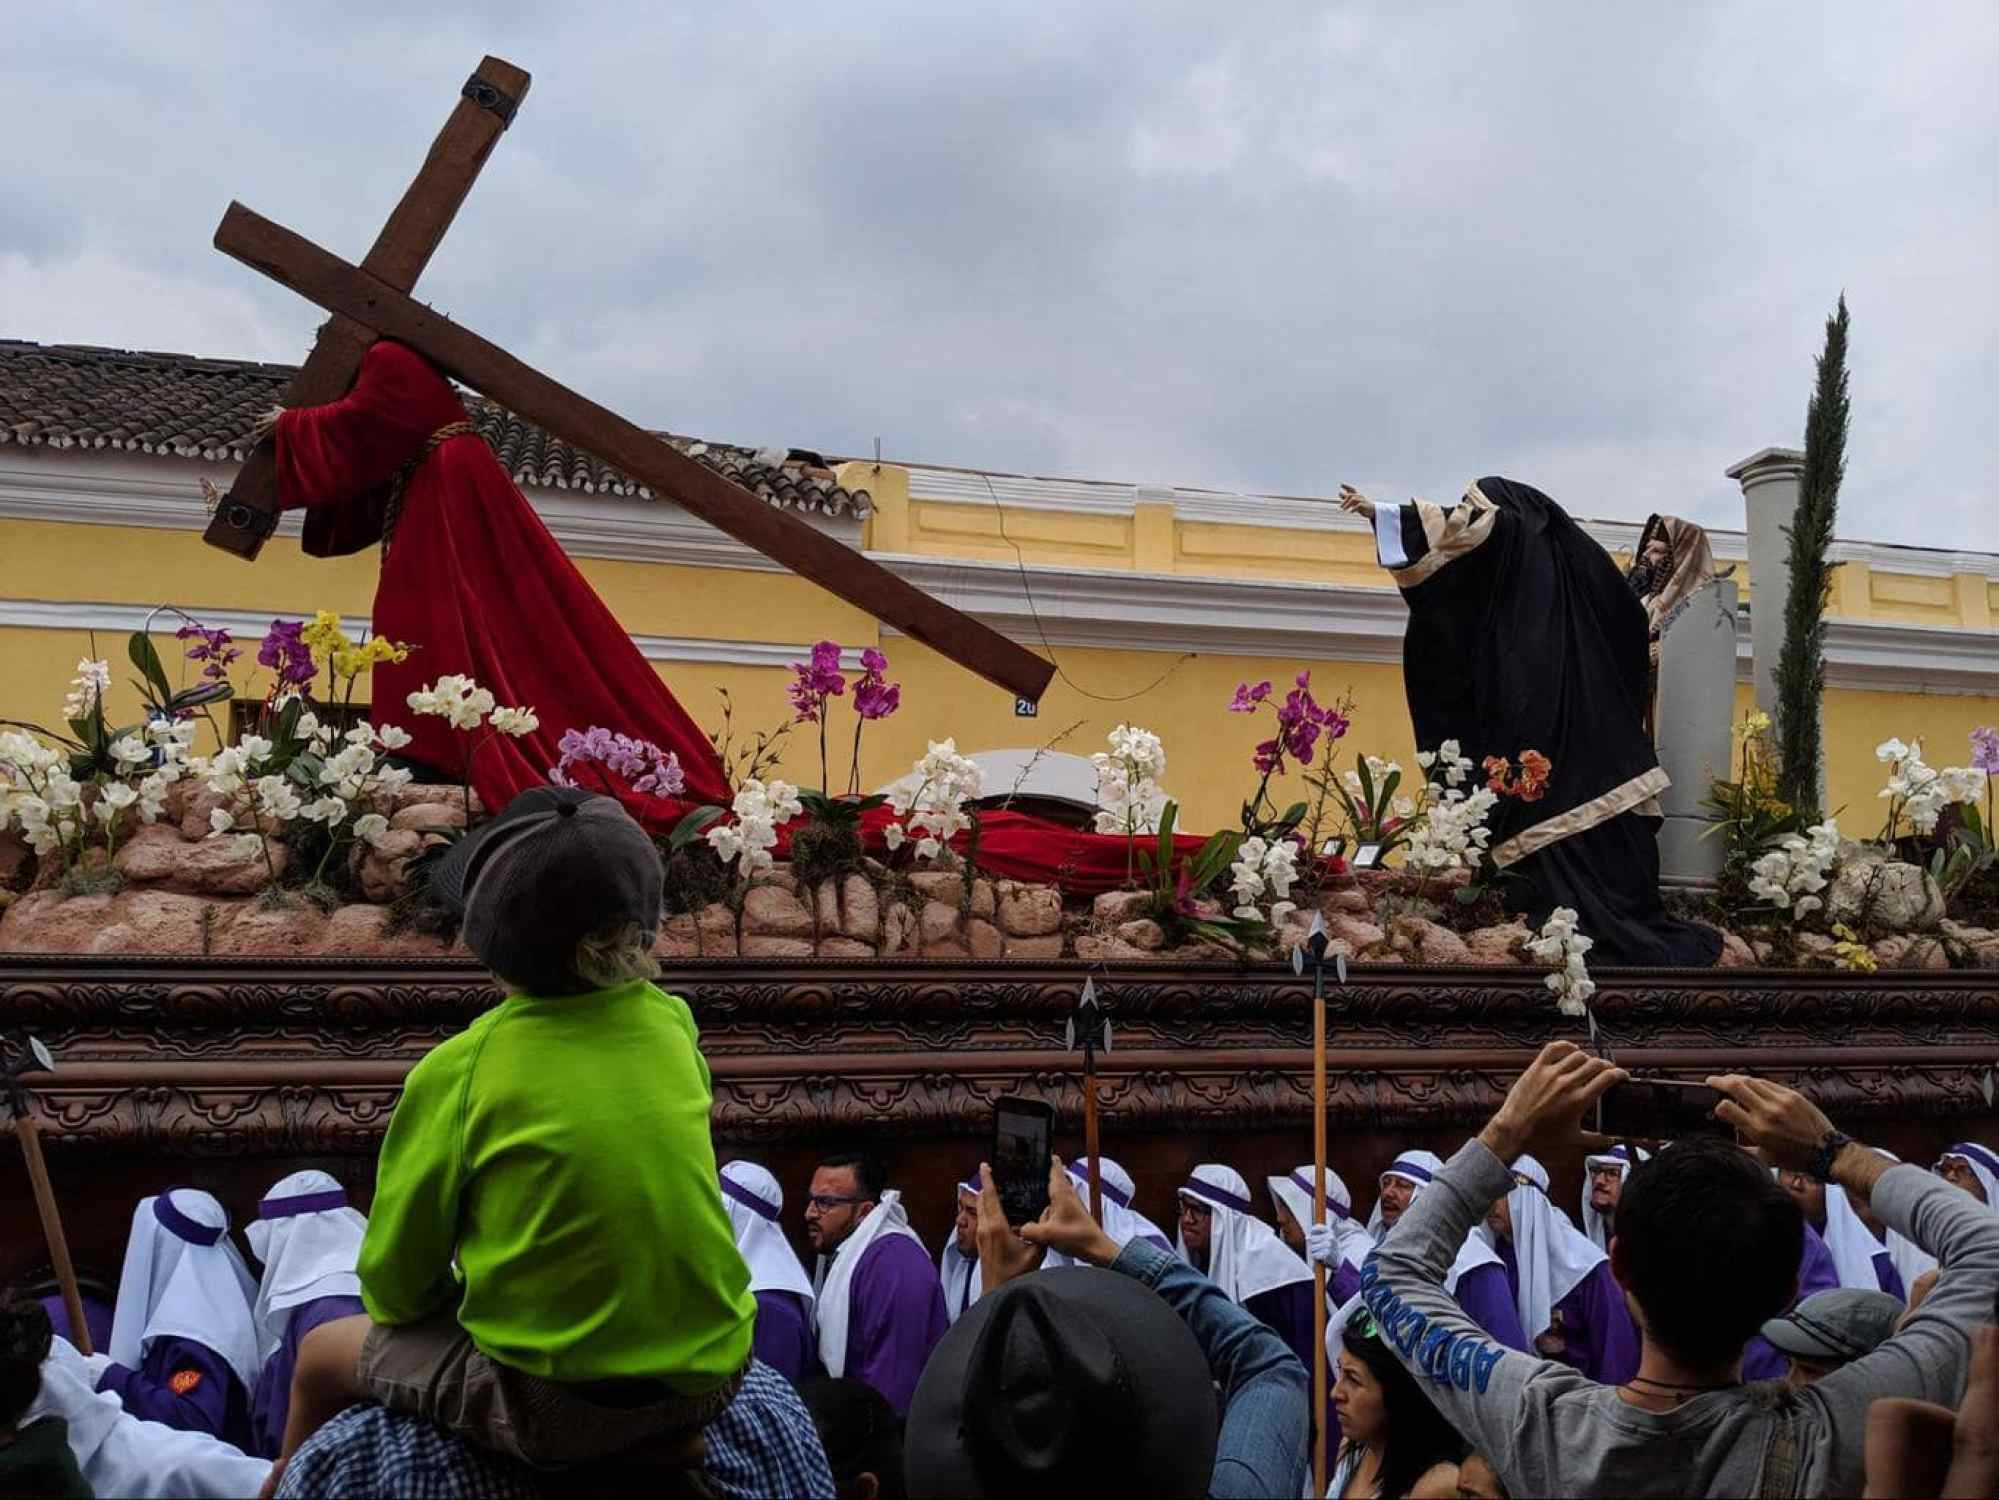 One of the Holy Week processions in Antigua Guatemala